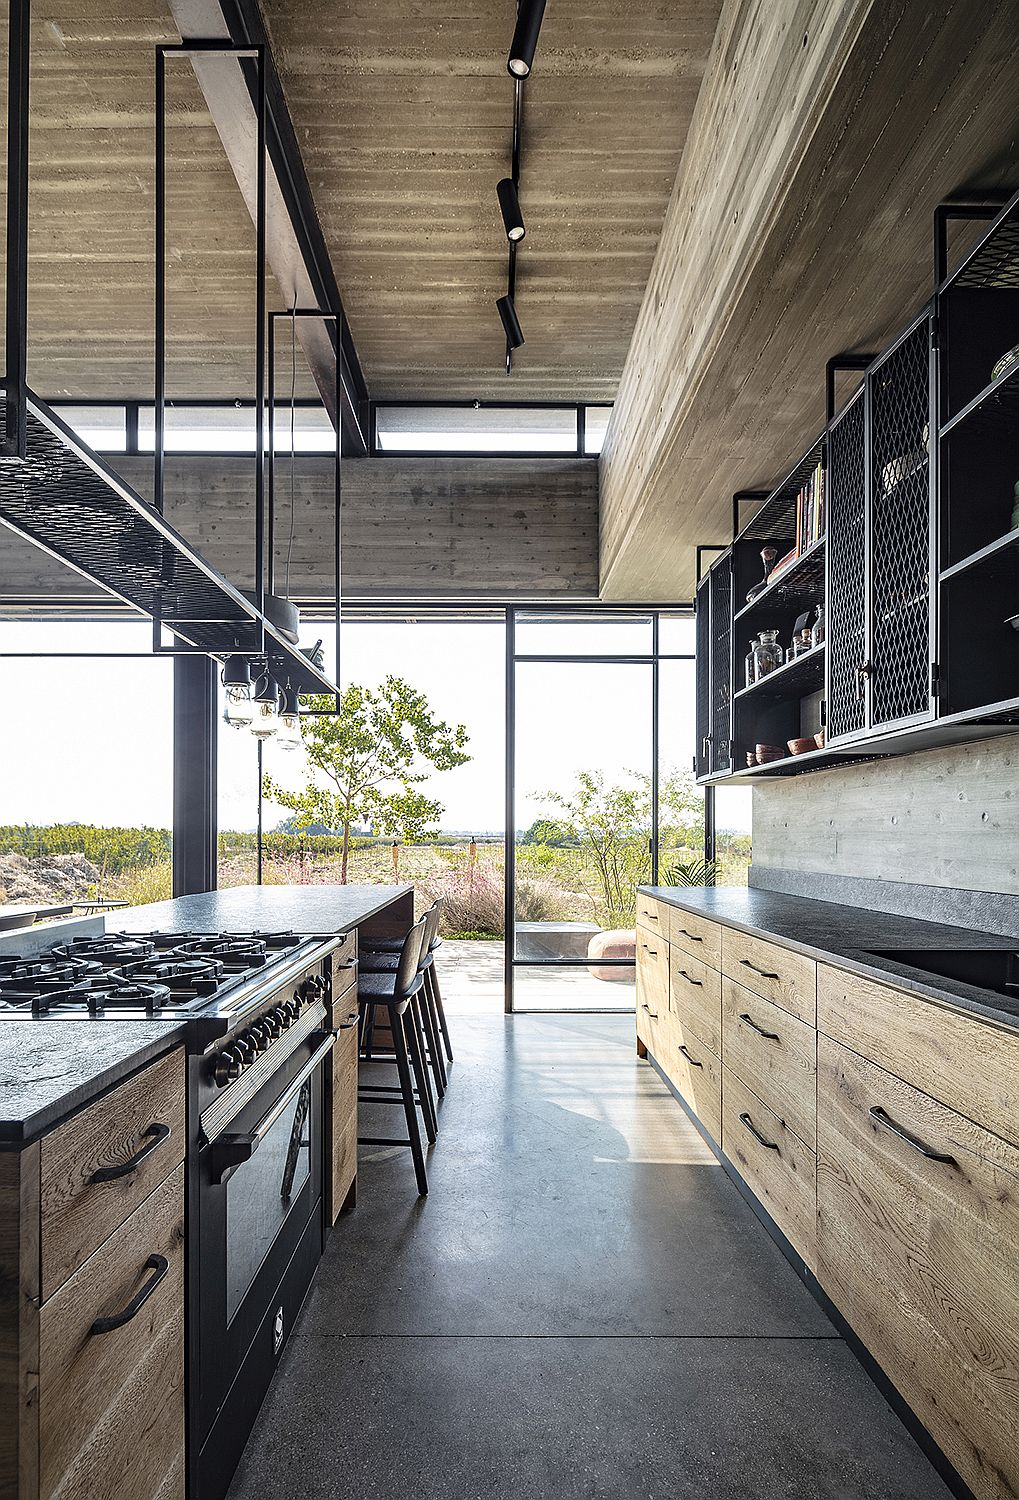 Dining area and kitchen of the Tel Aviv home connected with the fields outside